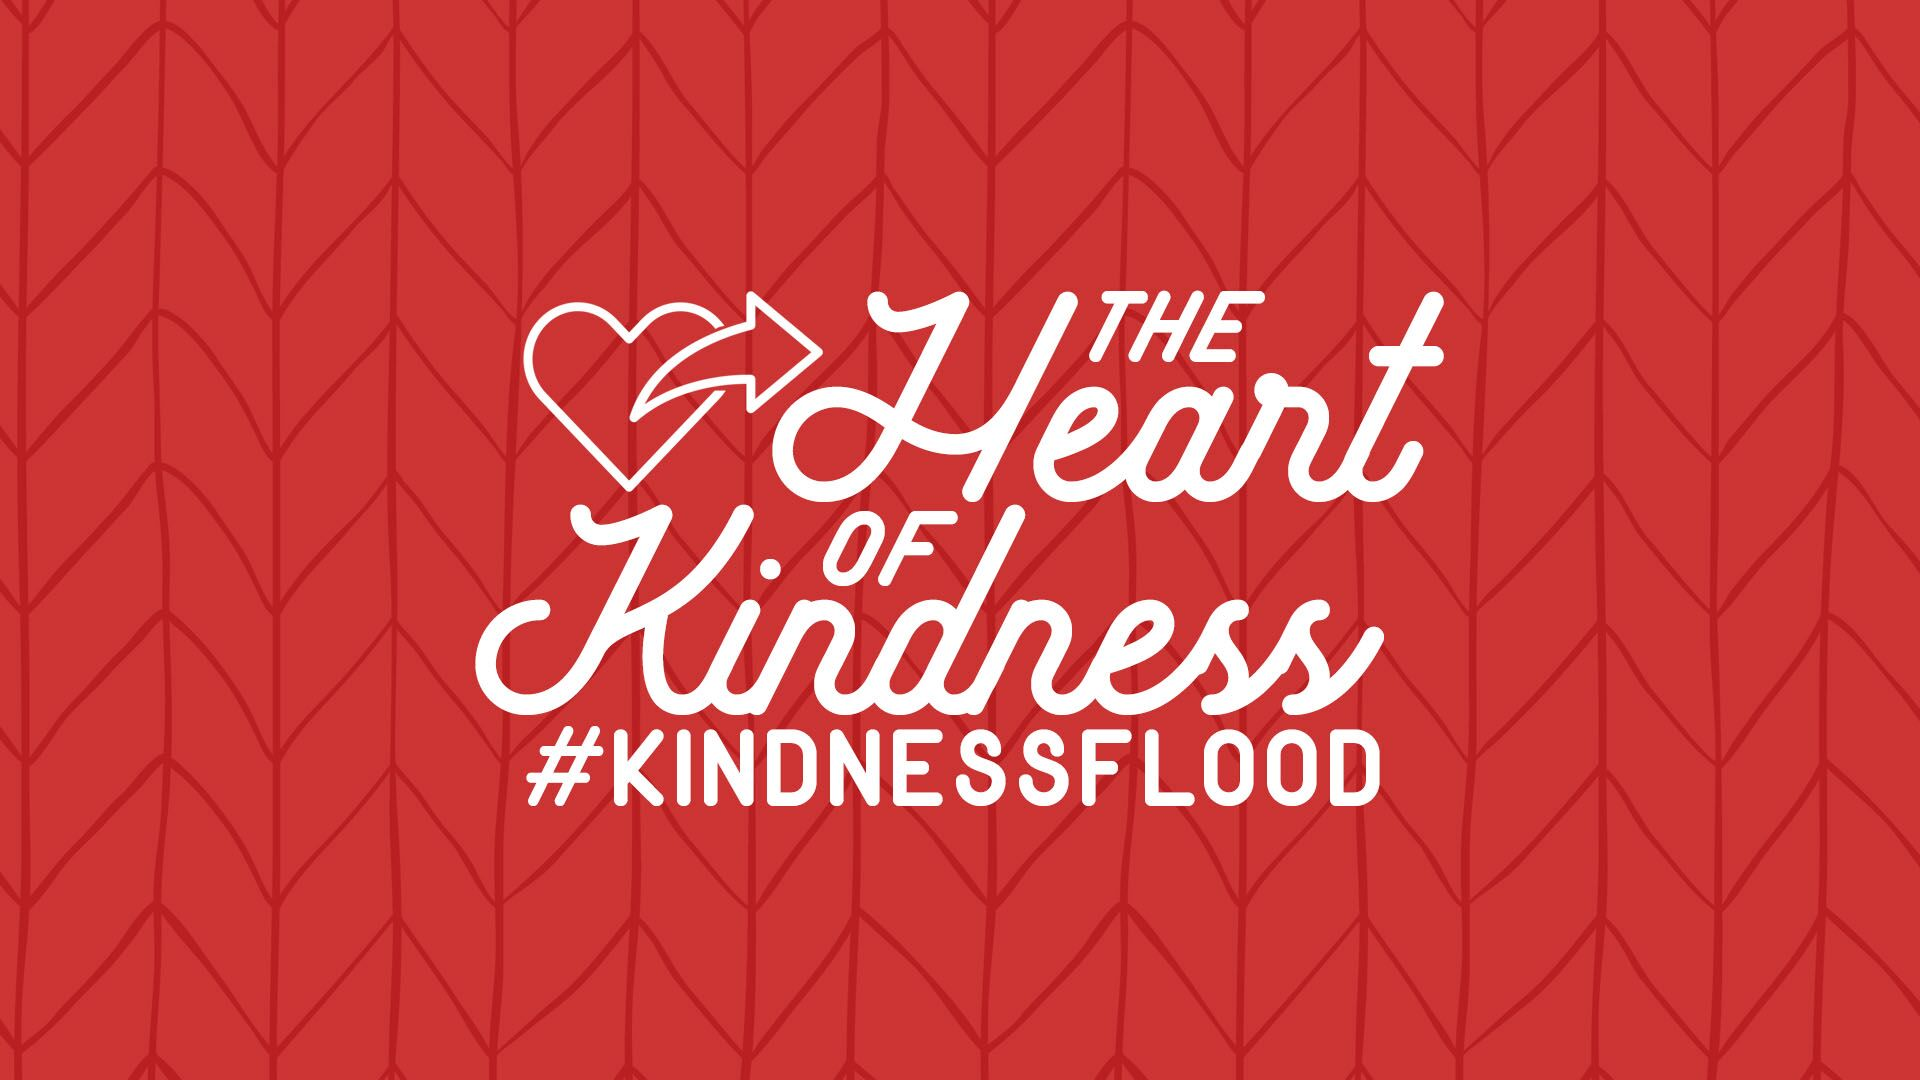 The Heart of Kindness Series - This is a four week series that will begin a flood of kindness in your youth group, church & community!